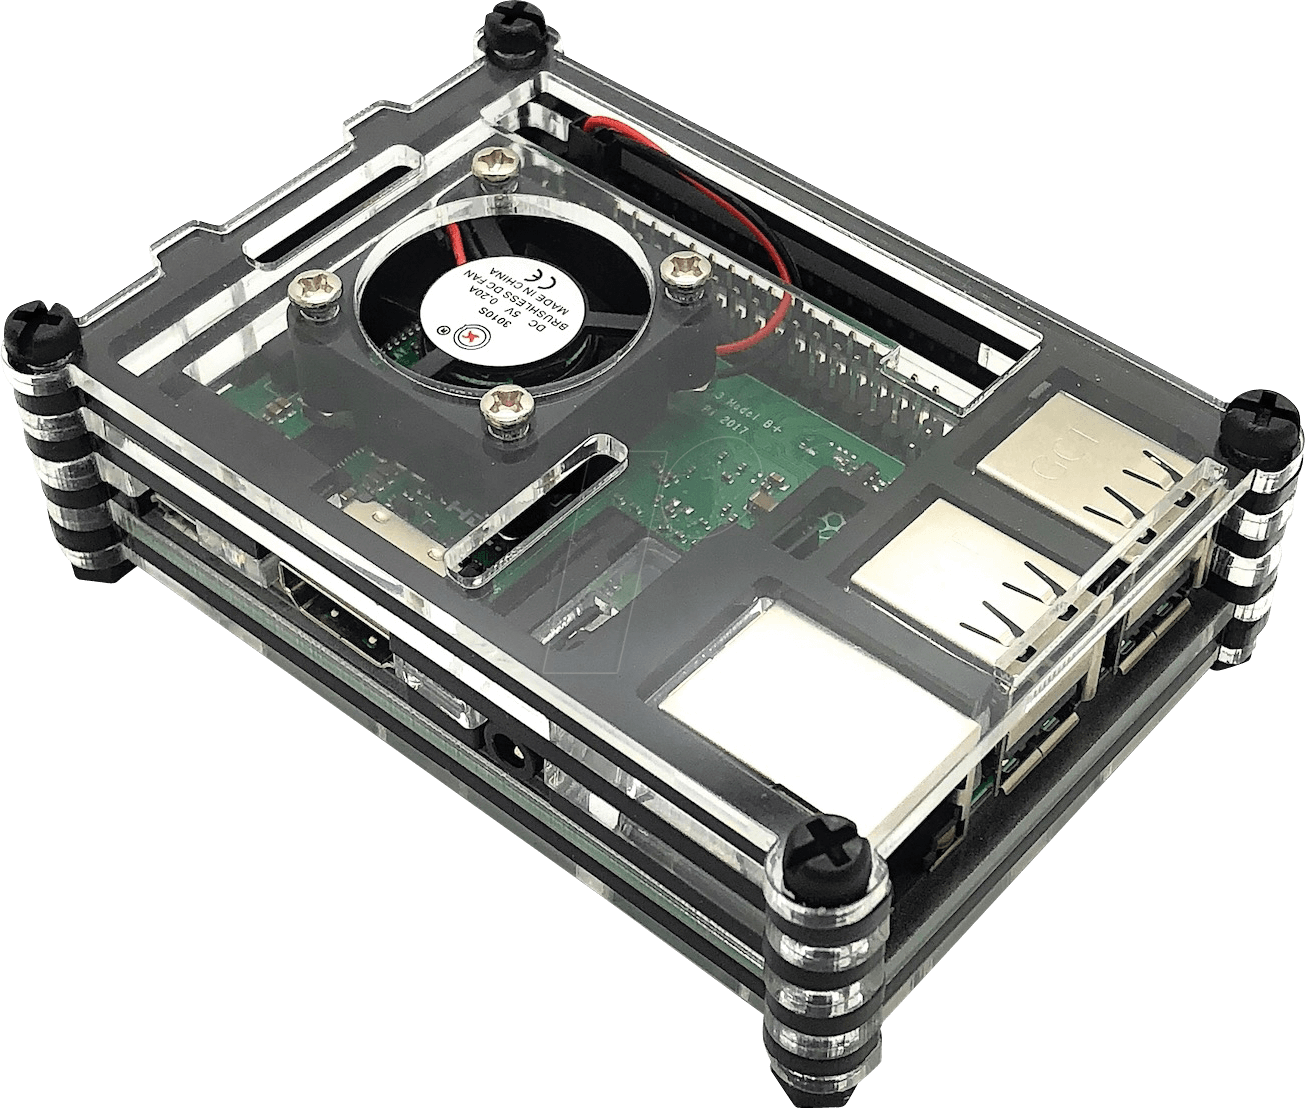 Rpi Case Stack Housing For Raspberry Pi 3 With Fan Stackable Model B Transparant Transparent Blac Sertronics